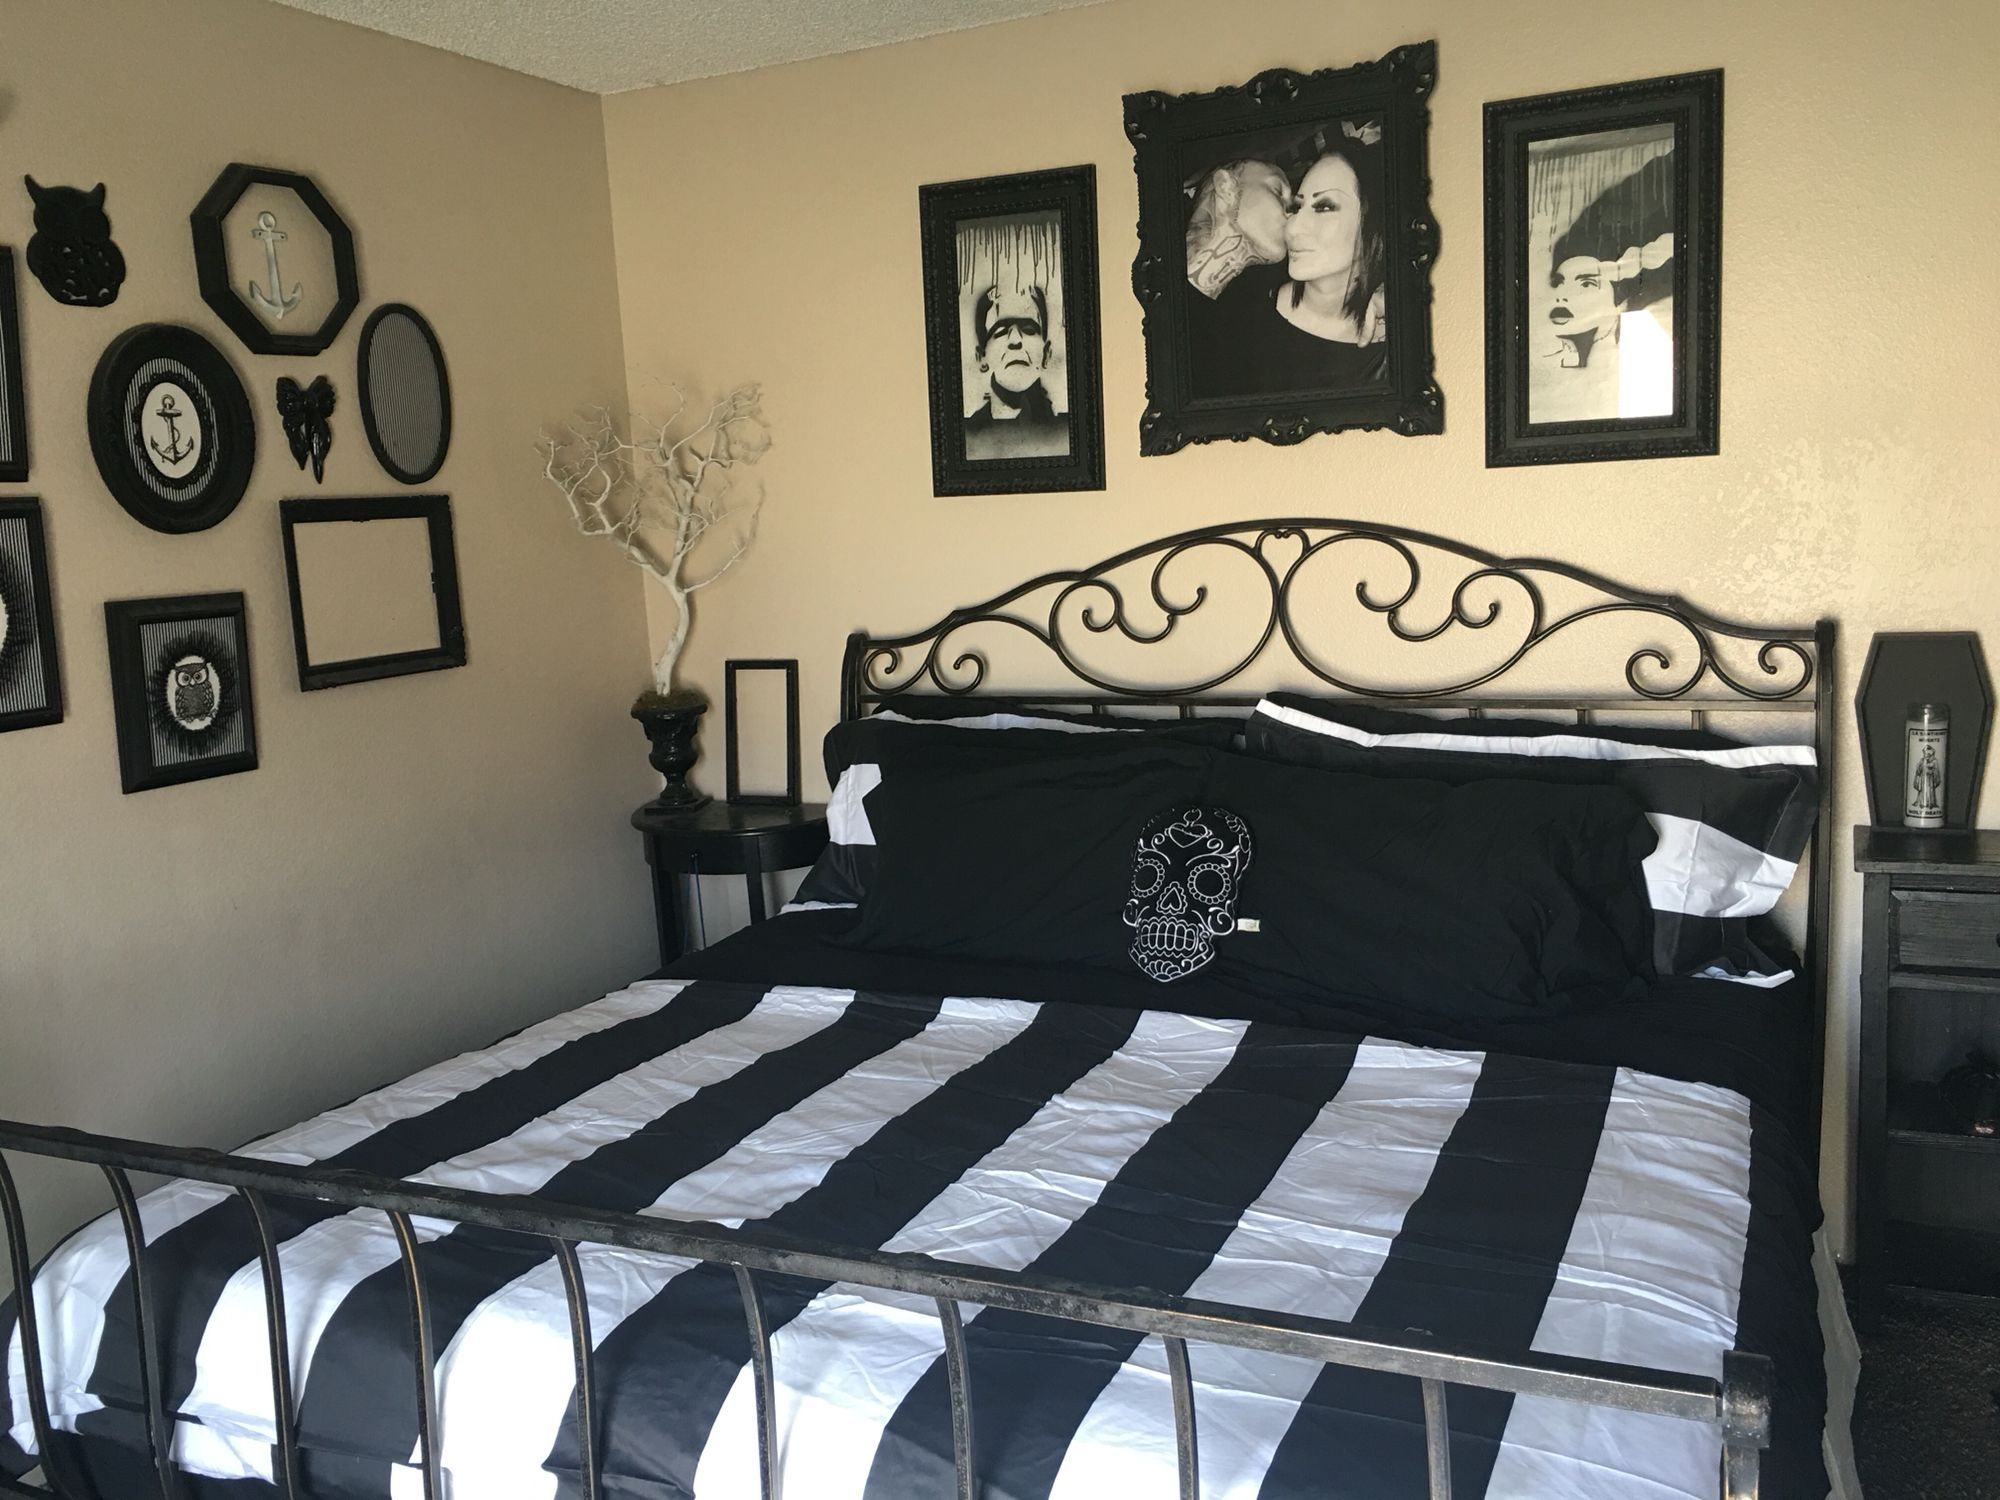 Photo of Pin By Leia Proudfoot On My Style | Bedroom Decor, Home, Gothic Bedroom